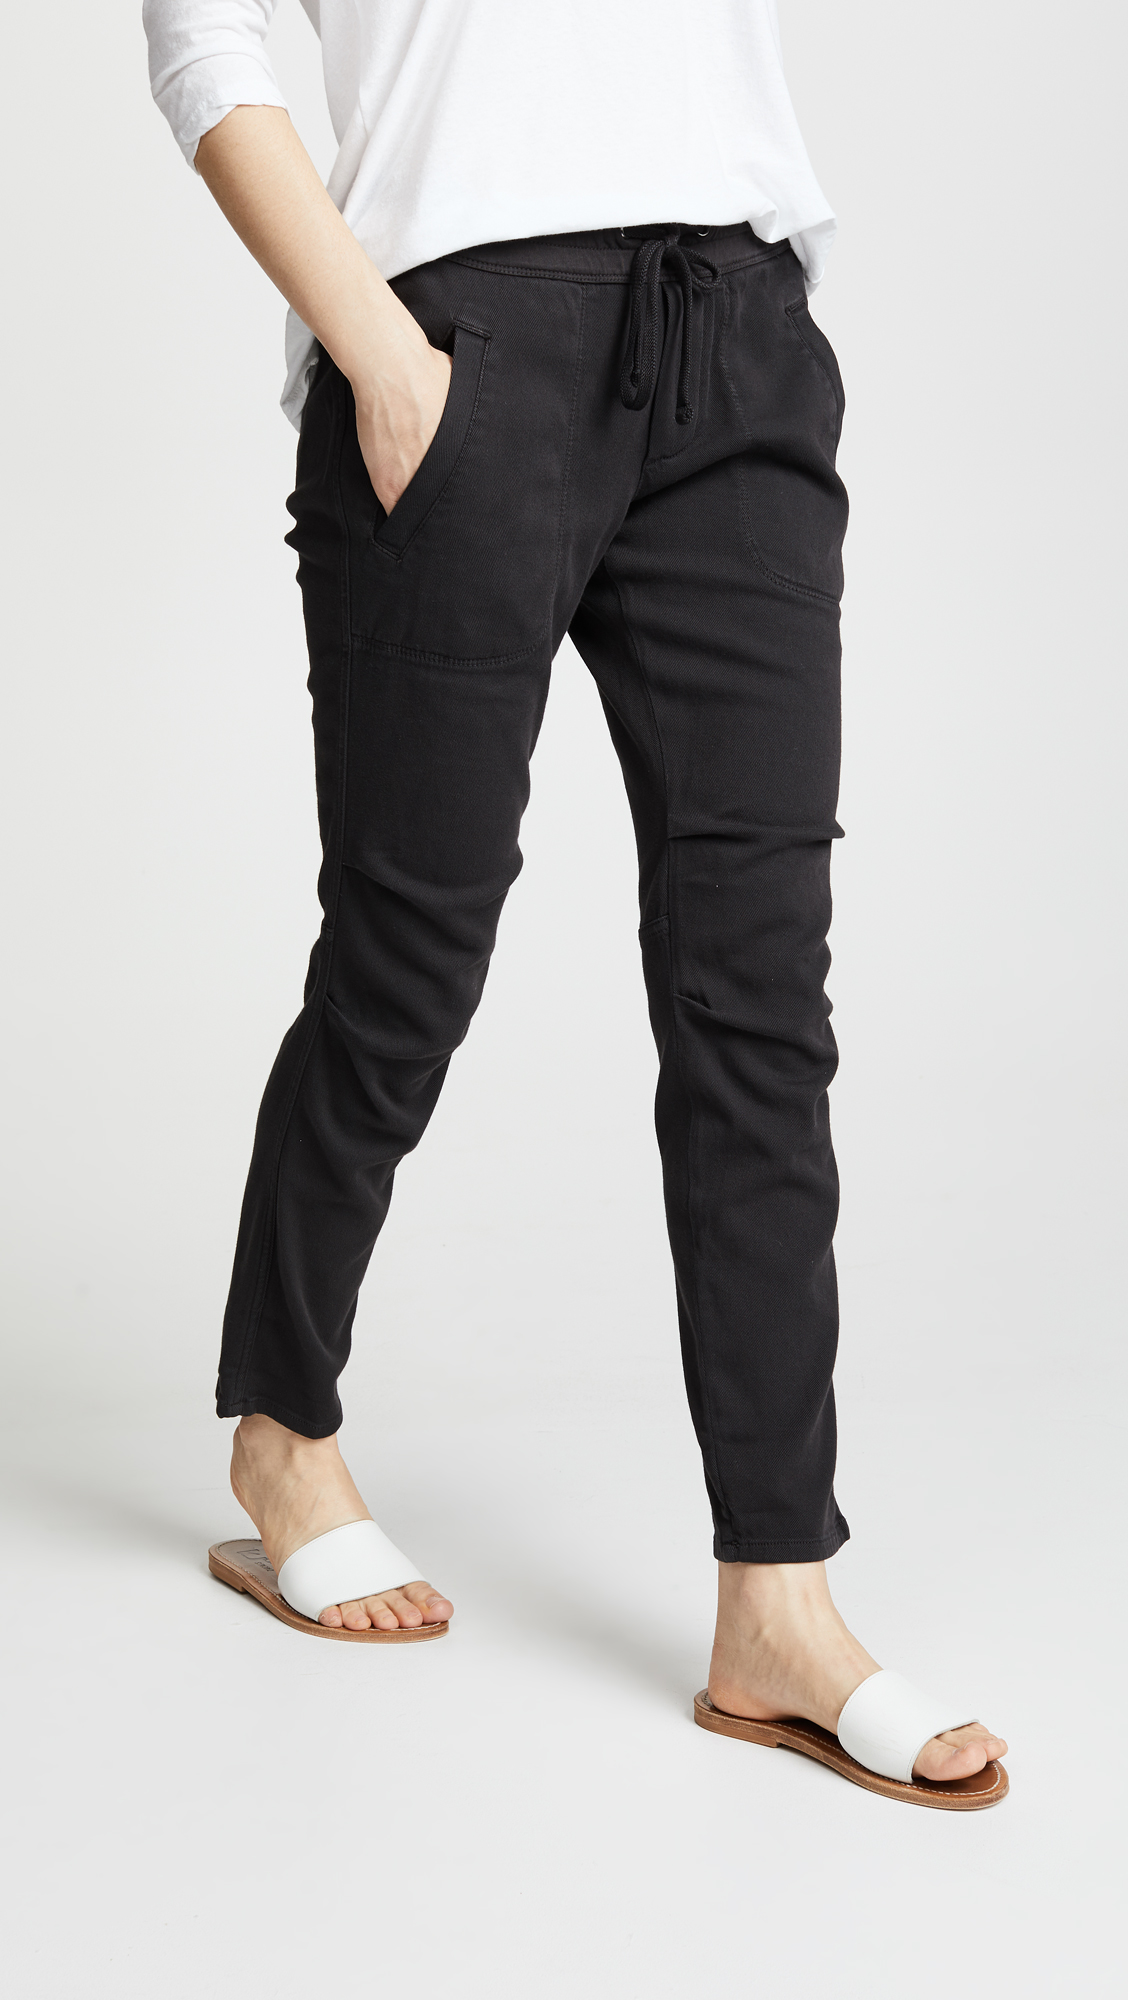 perse pant